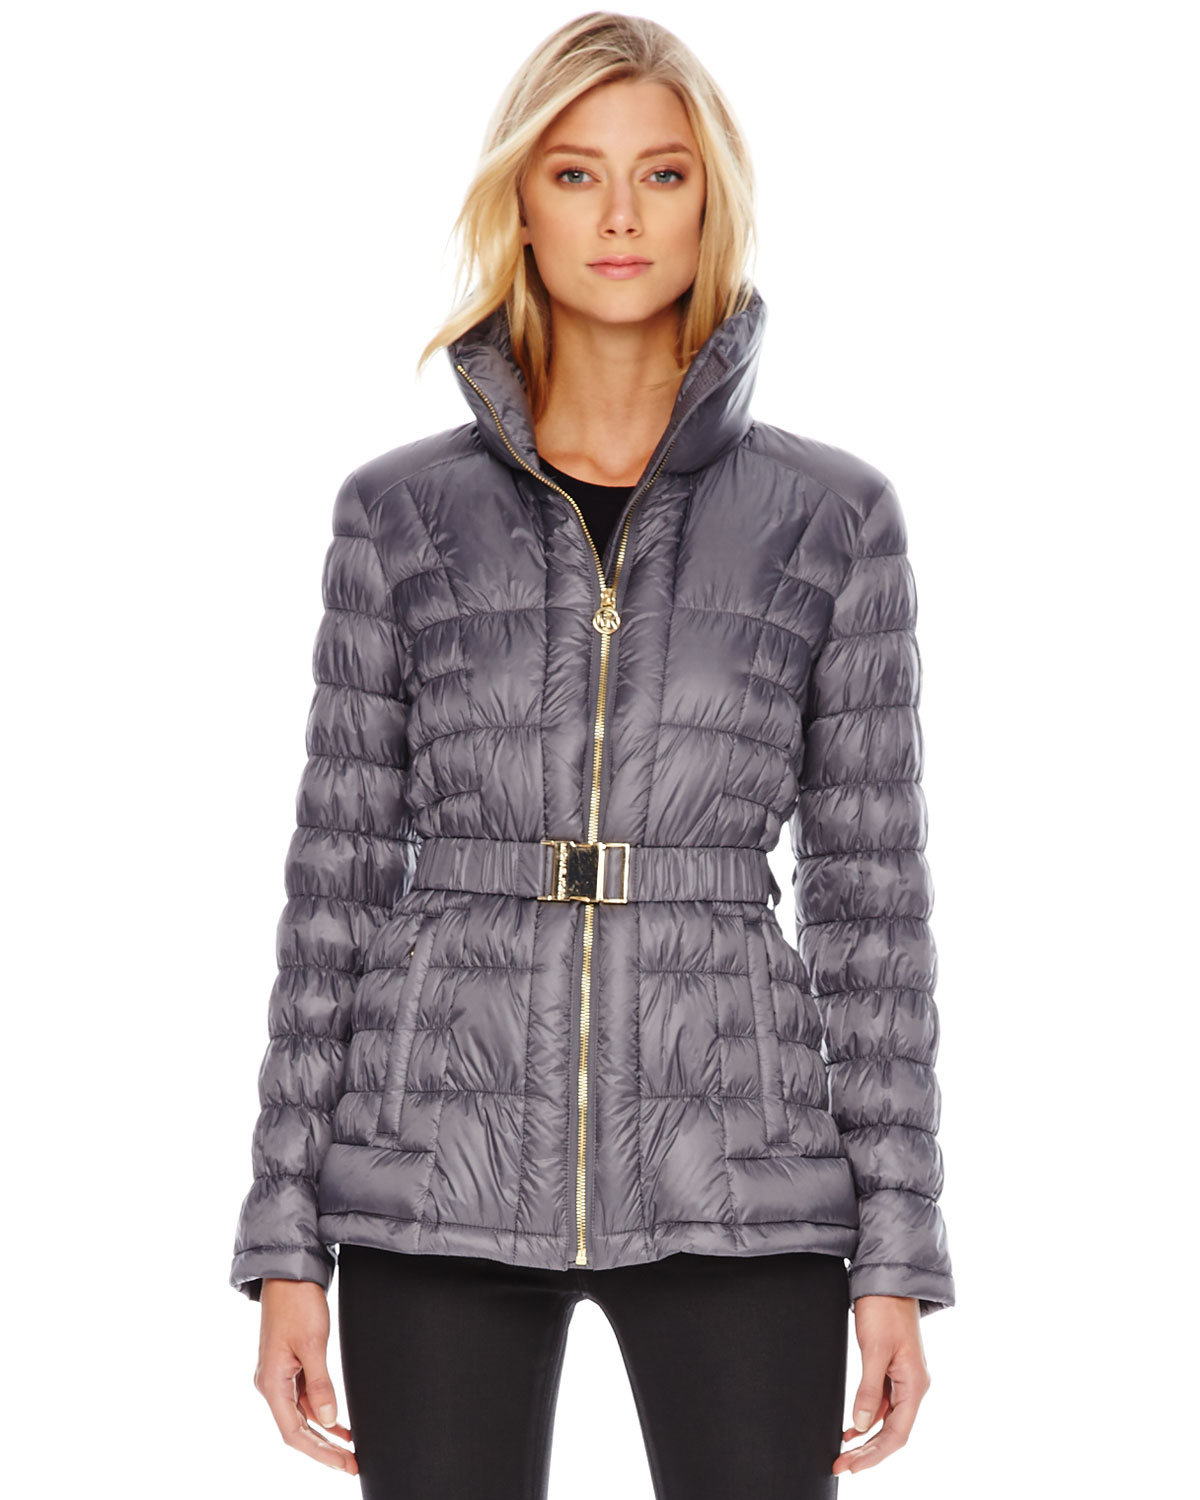 michael kors michael nipped puffer jacket in gray slate. Black Bedroom Furniture Sets. Home Design Ideas